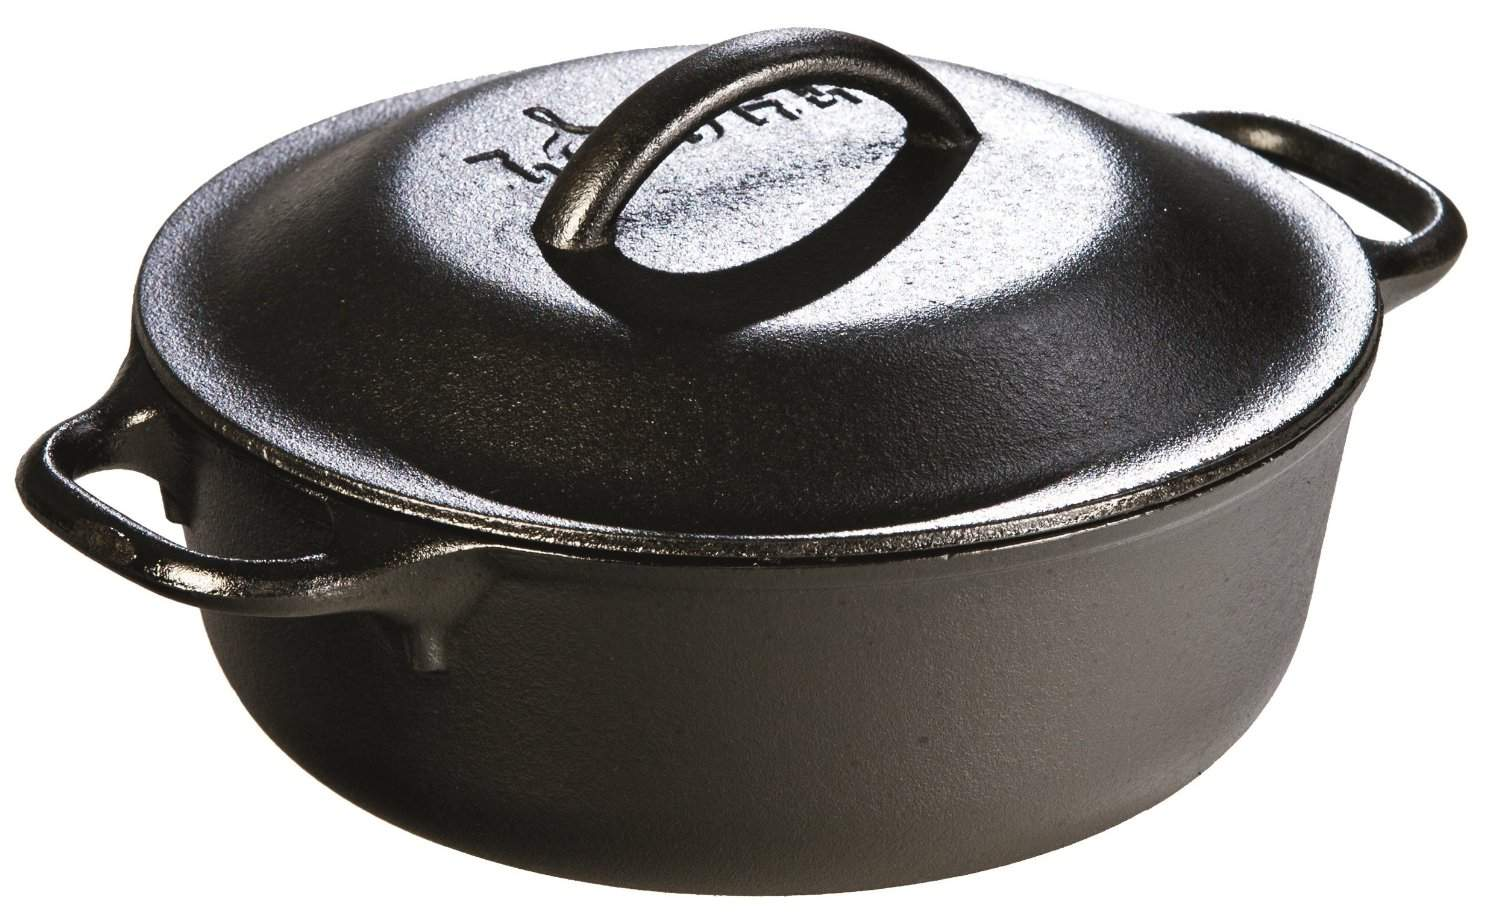 Buy Lodge 2 Quart Cast Iron Dutch Oven Pre Seasoned Pot With Lid For Cooking Basting Or Baking Features Price Reviews Online In India Justdial